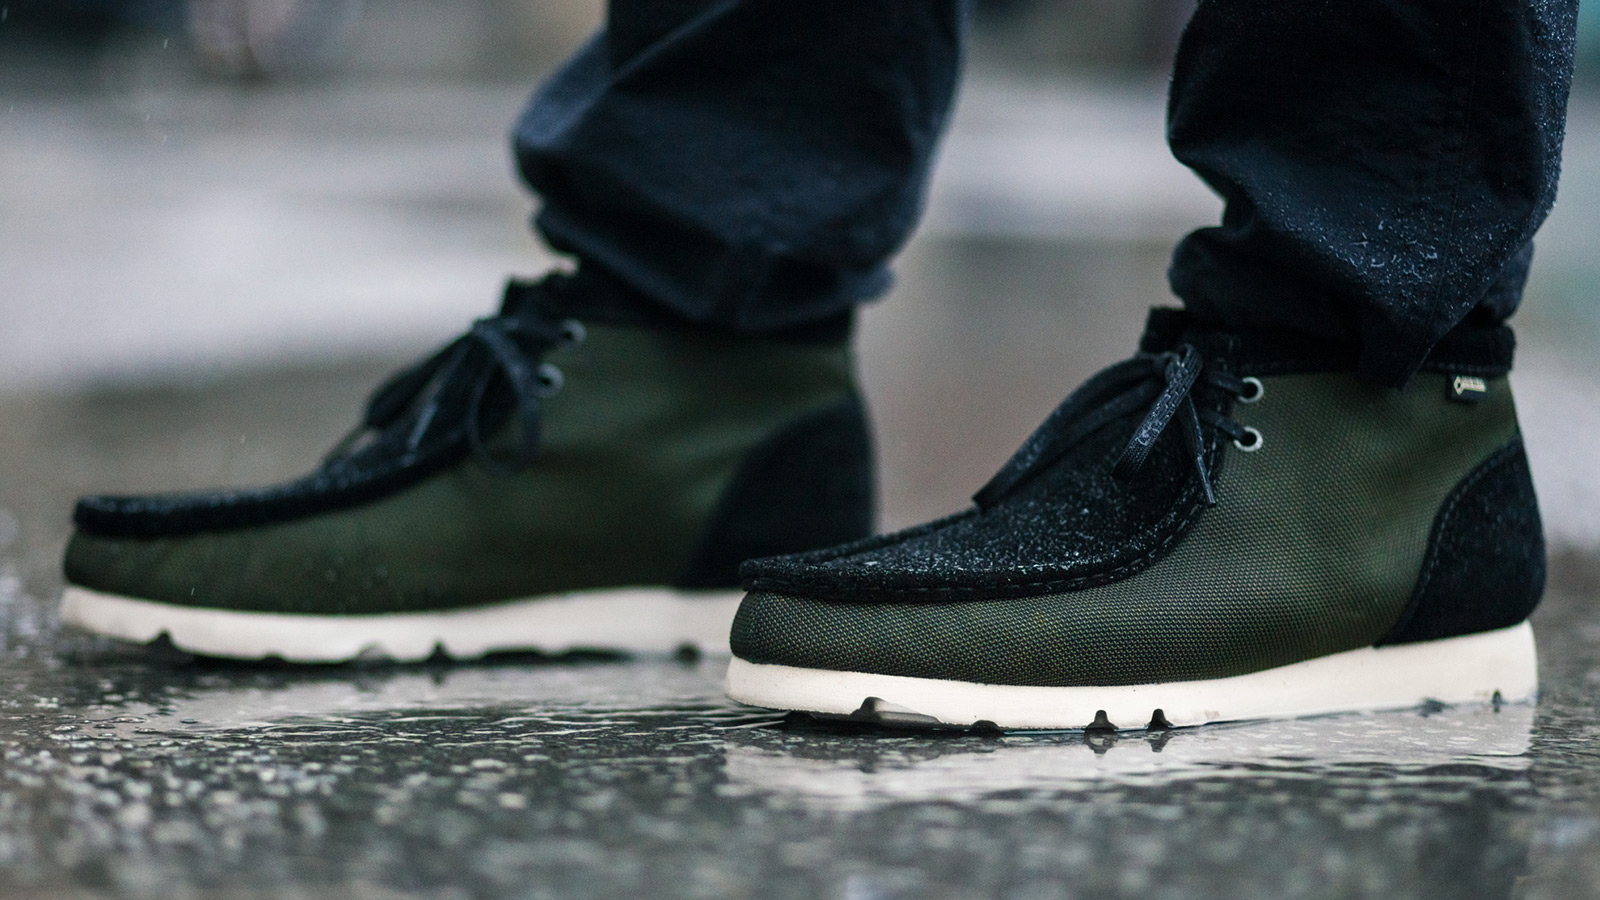 HAVEN x Clarks Originals Gore-Tex Ballistic Wallabee Boots